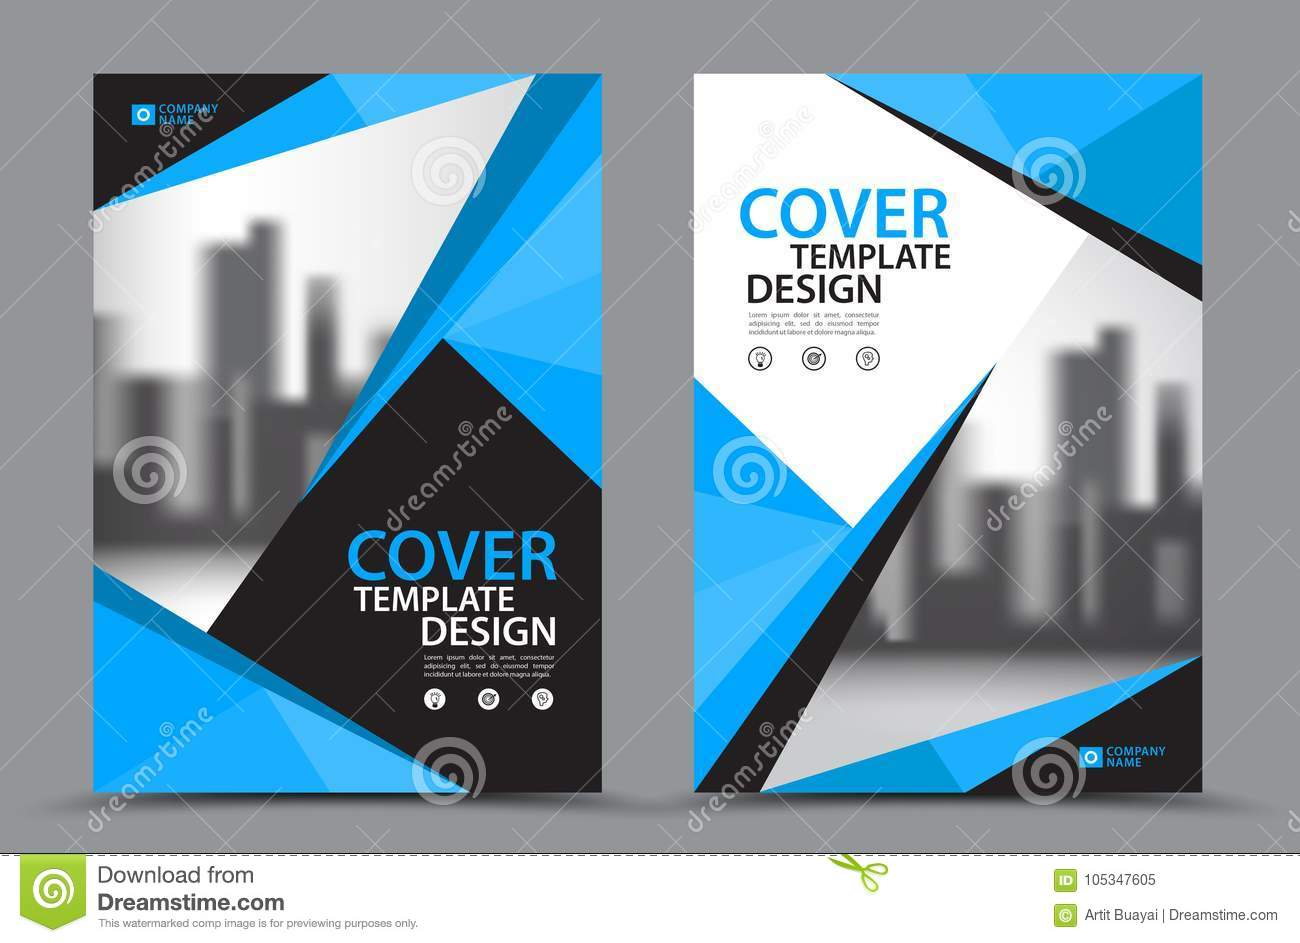 Book Cover Design Free Download Software ~ Blue color scheme with city background business book cover design